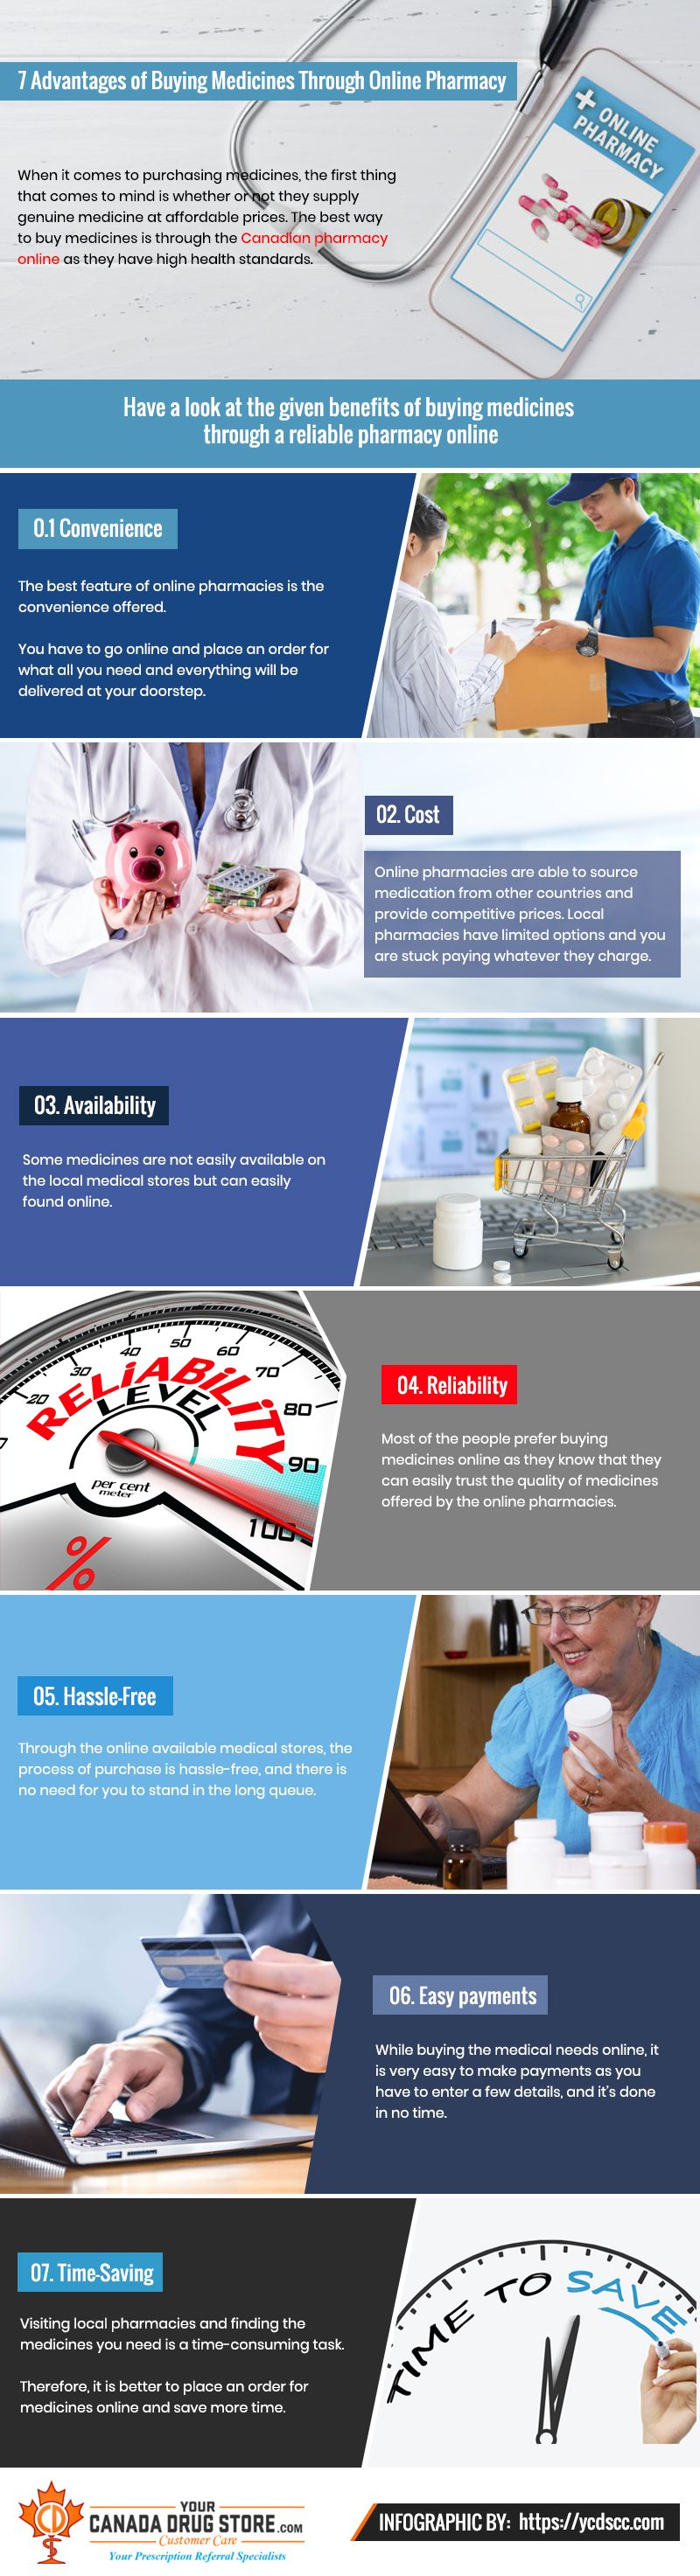 7 Advantages of Buying Medicines From an Online Pharmacy Infographic